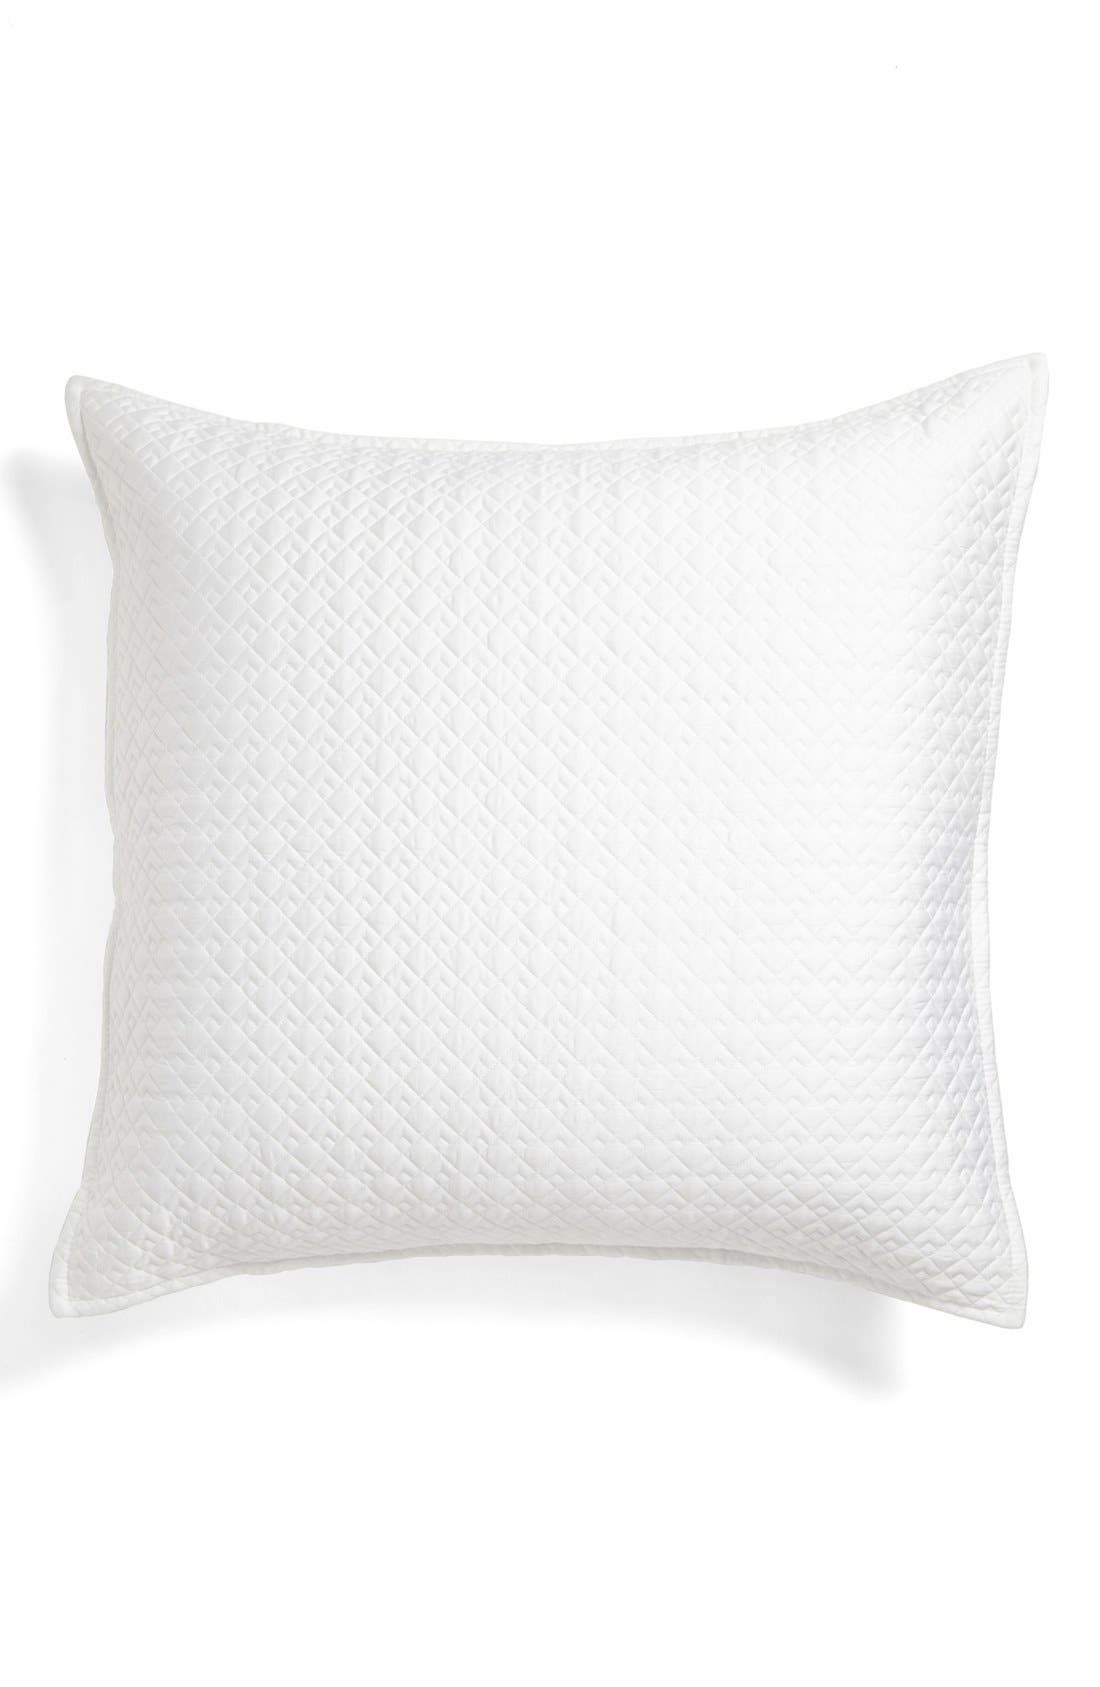 Main Image - Vera Wang 'Double Diamond' Quilted Euro Sham